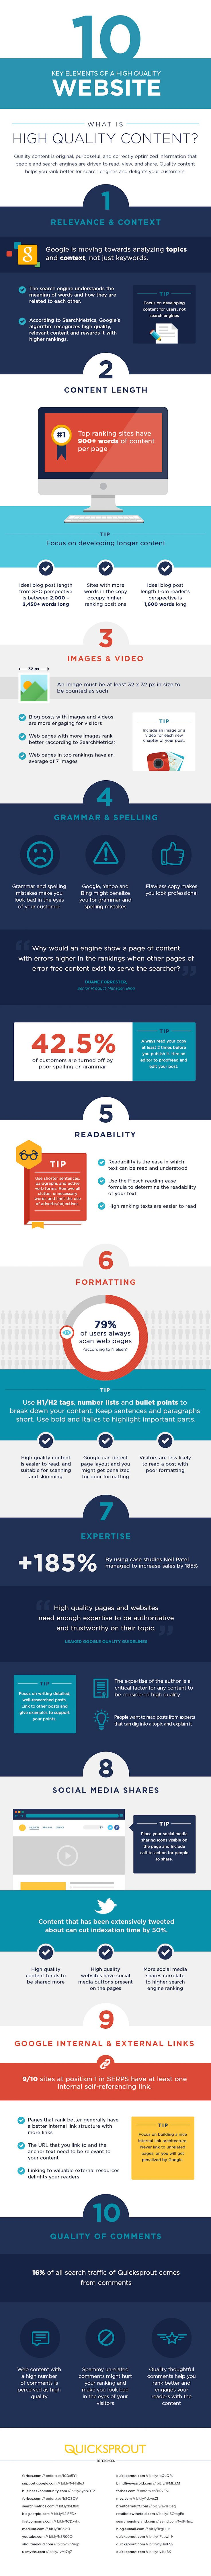 The 10 Key Elements of a High Quality Website - #infographic #socialmedia